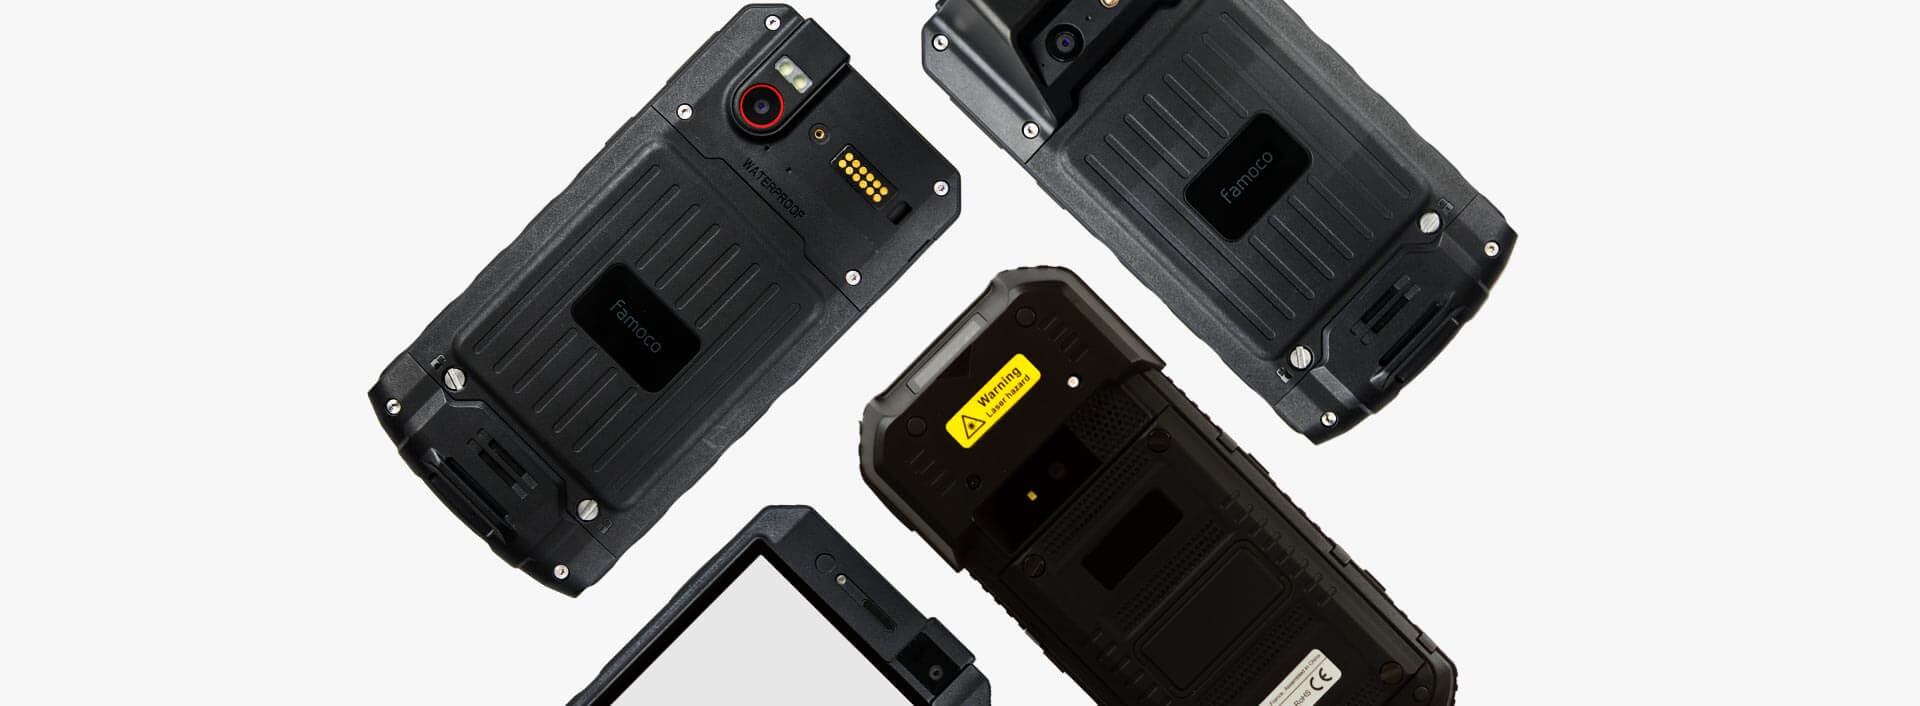 Rugged-devices-backgroud-1920x706